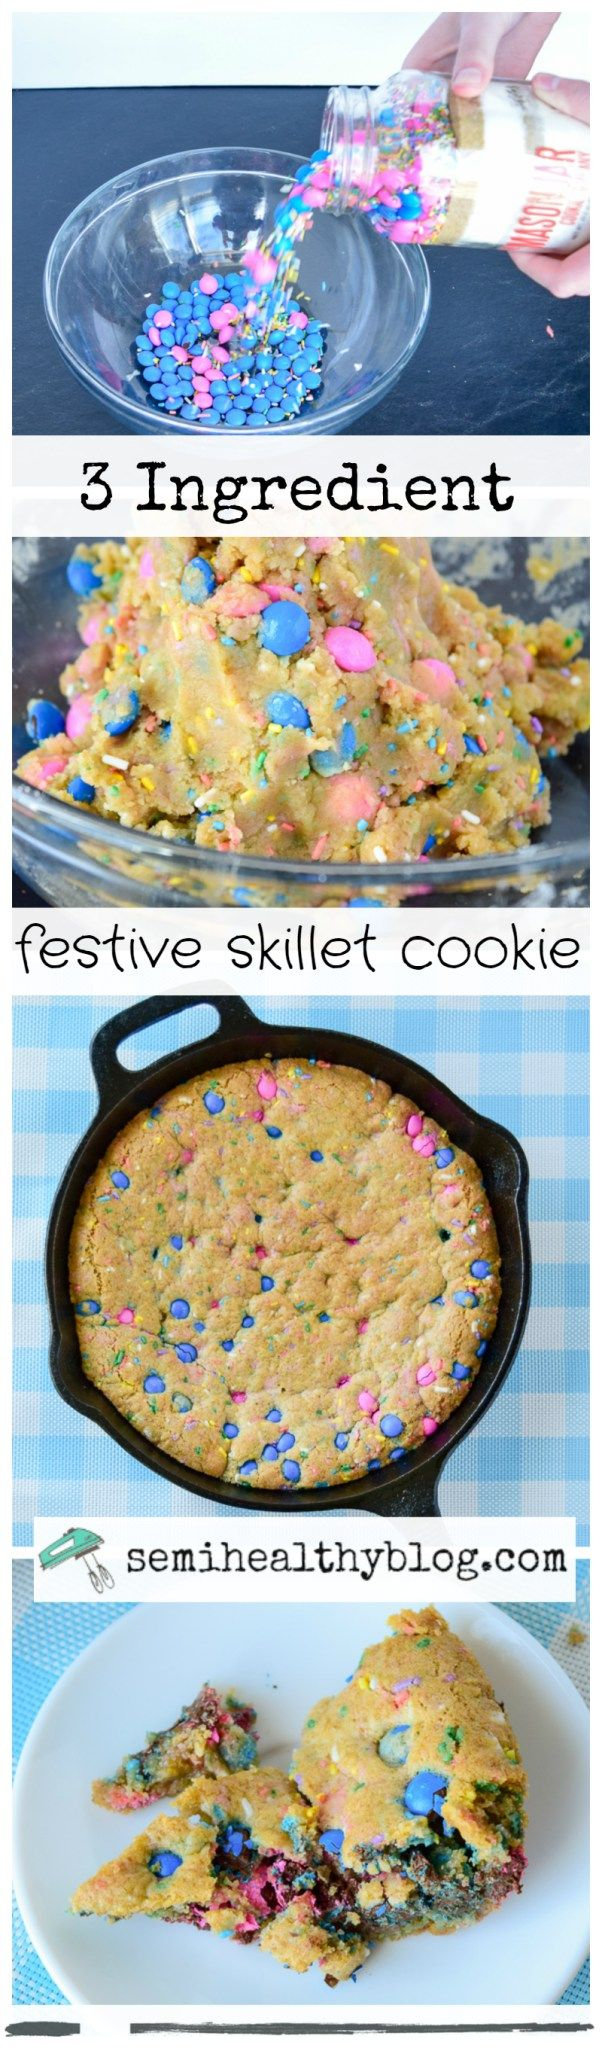 3 ingredient festive skillet cookie from mason cookie mix company via @semihealthnut at semihealthyblog.com